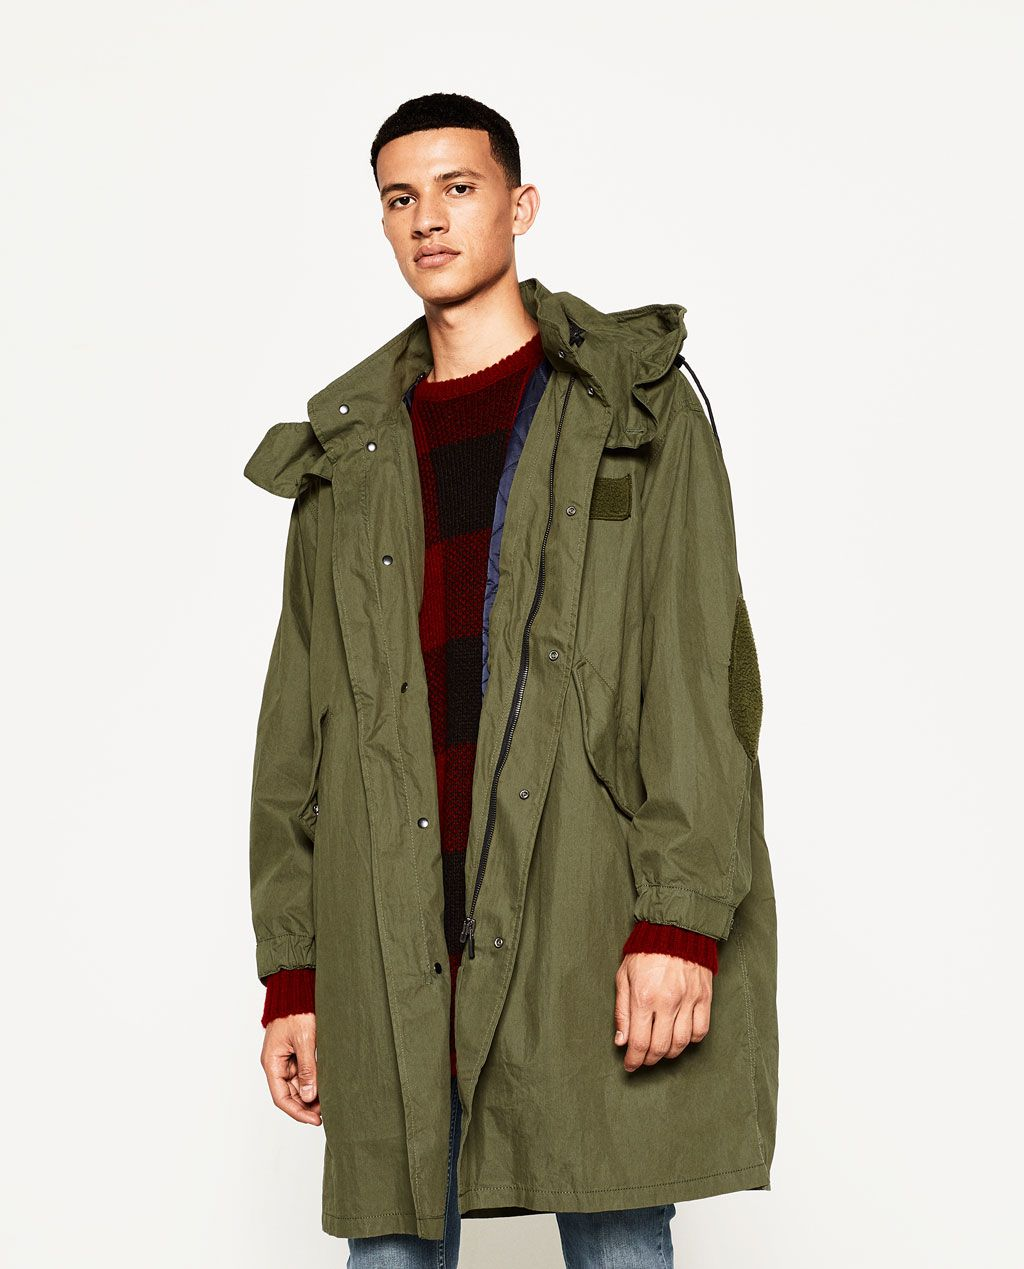 ZARA MAN OVERSIZED PARKA | Mens fall, Parka, Zara man